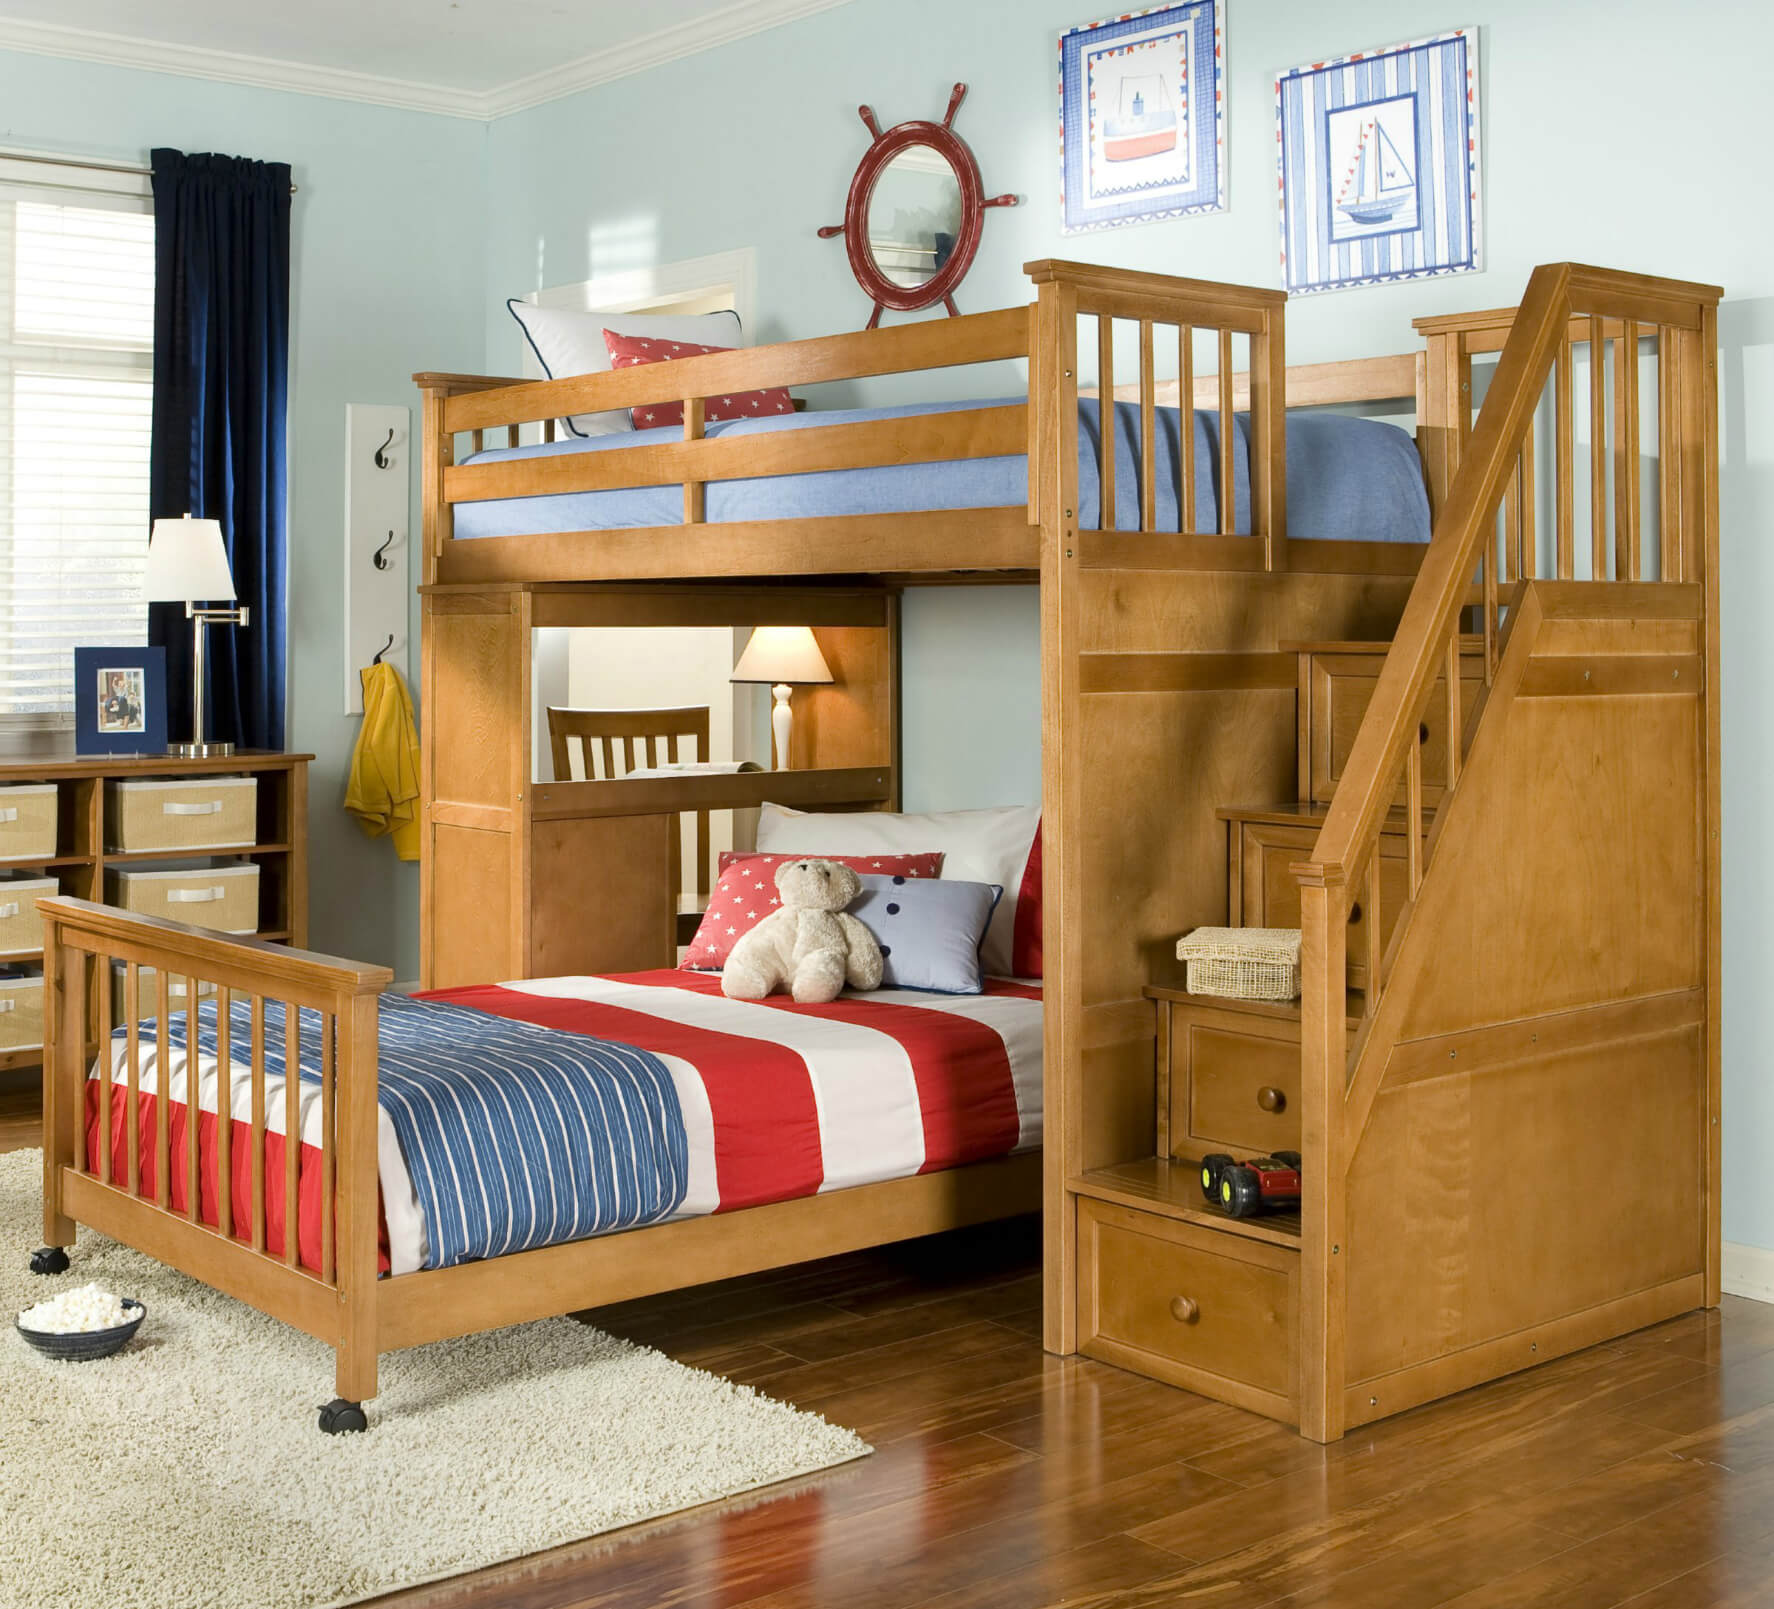 The Awesome Kids Bedroom with Wide Wooden Bunk Beds and Tidy Oak Shelves near Light Blue Wall